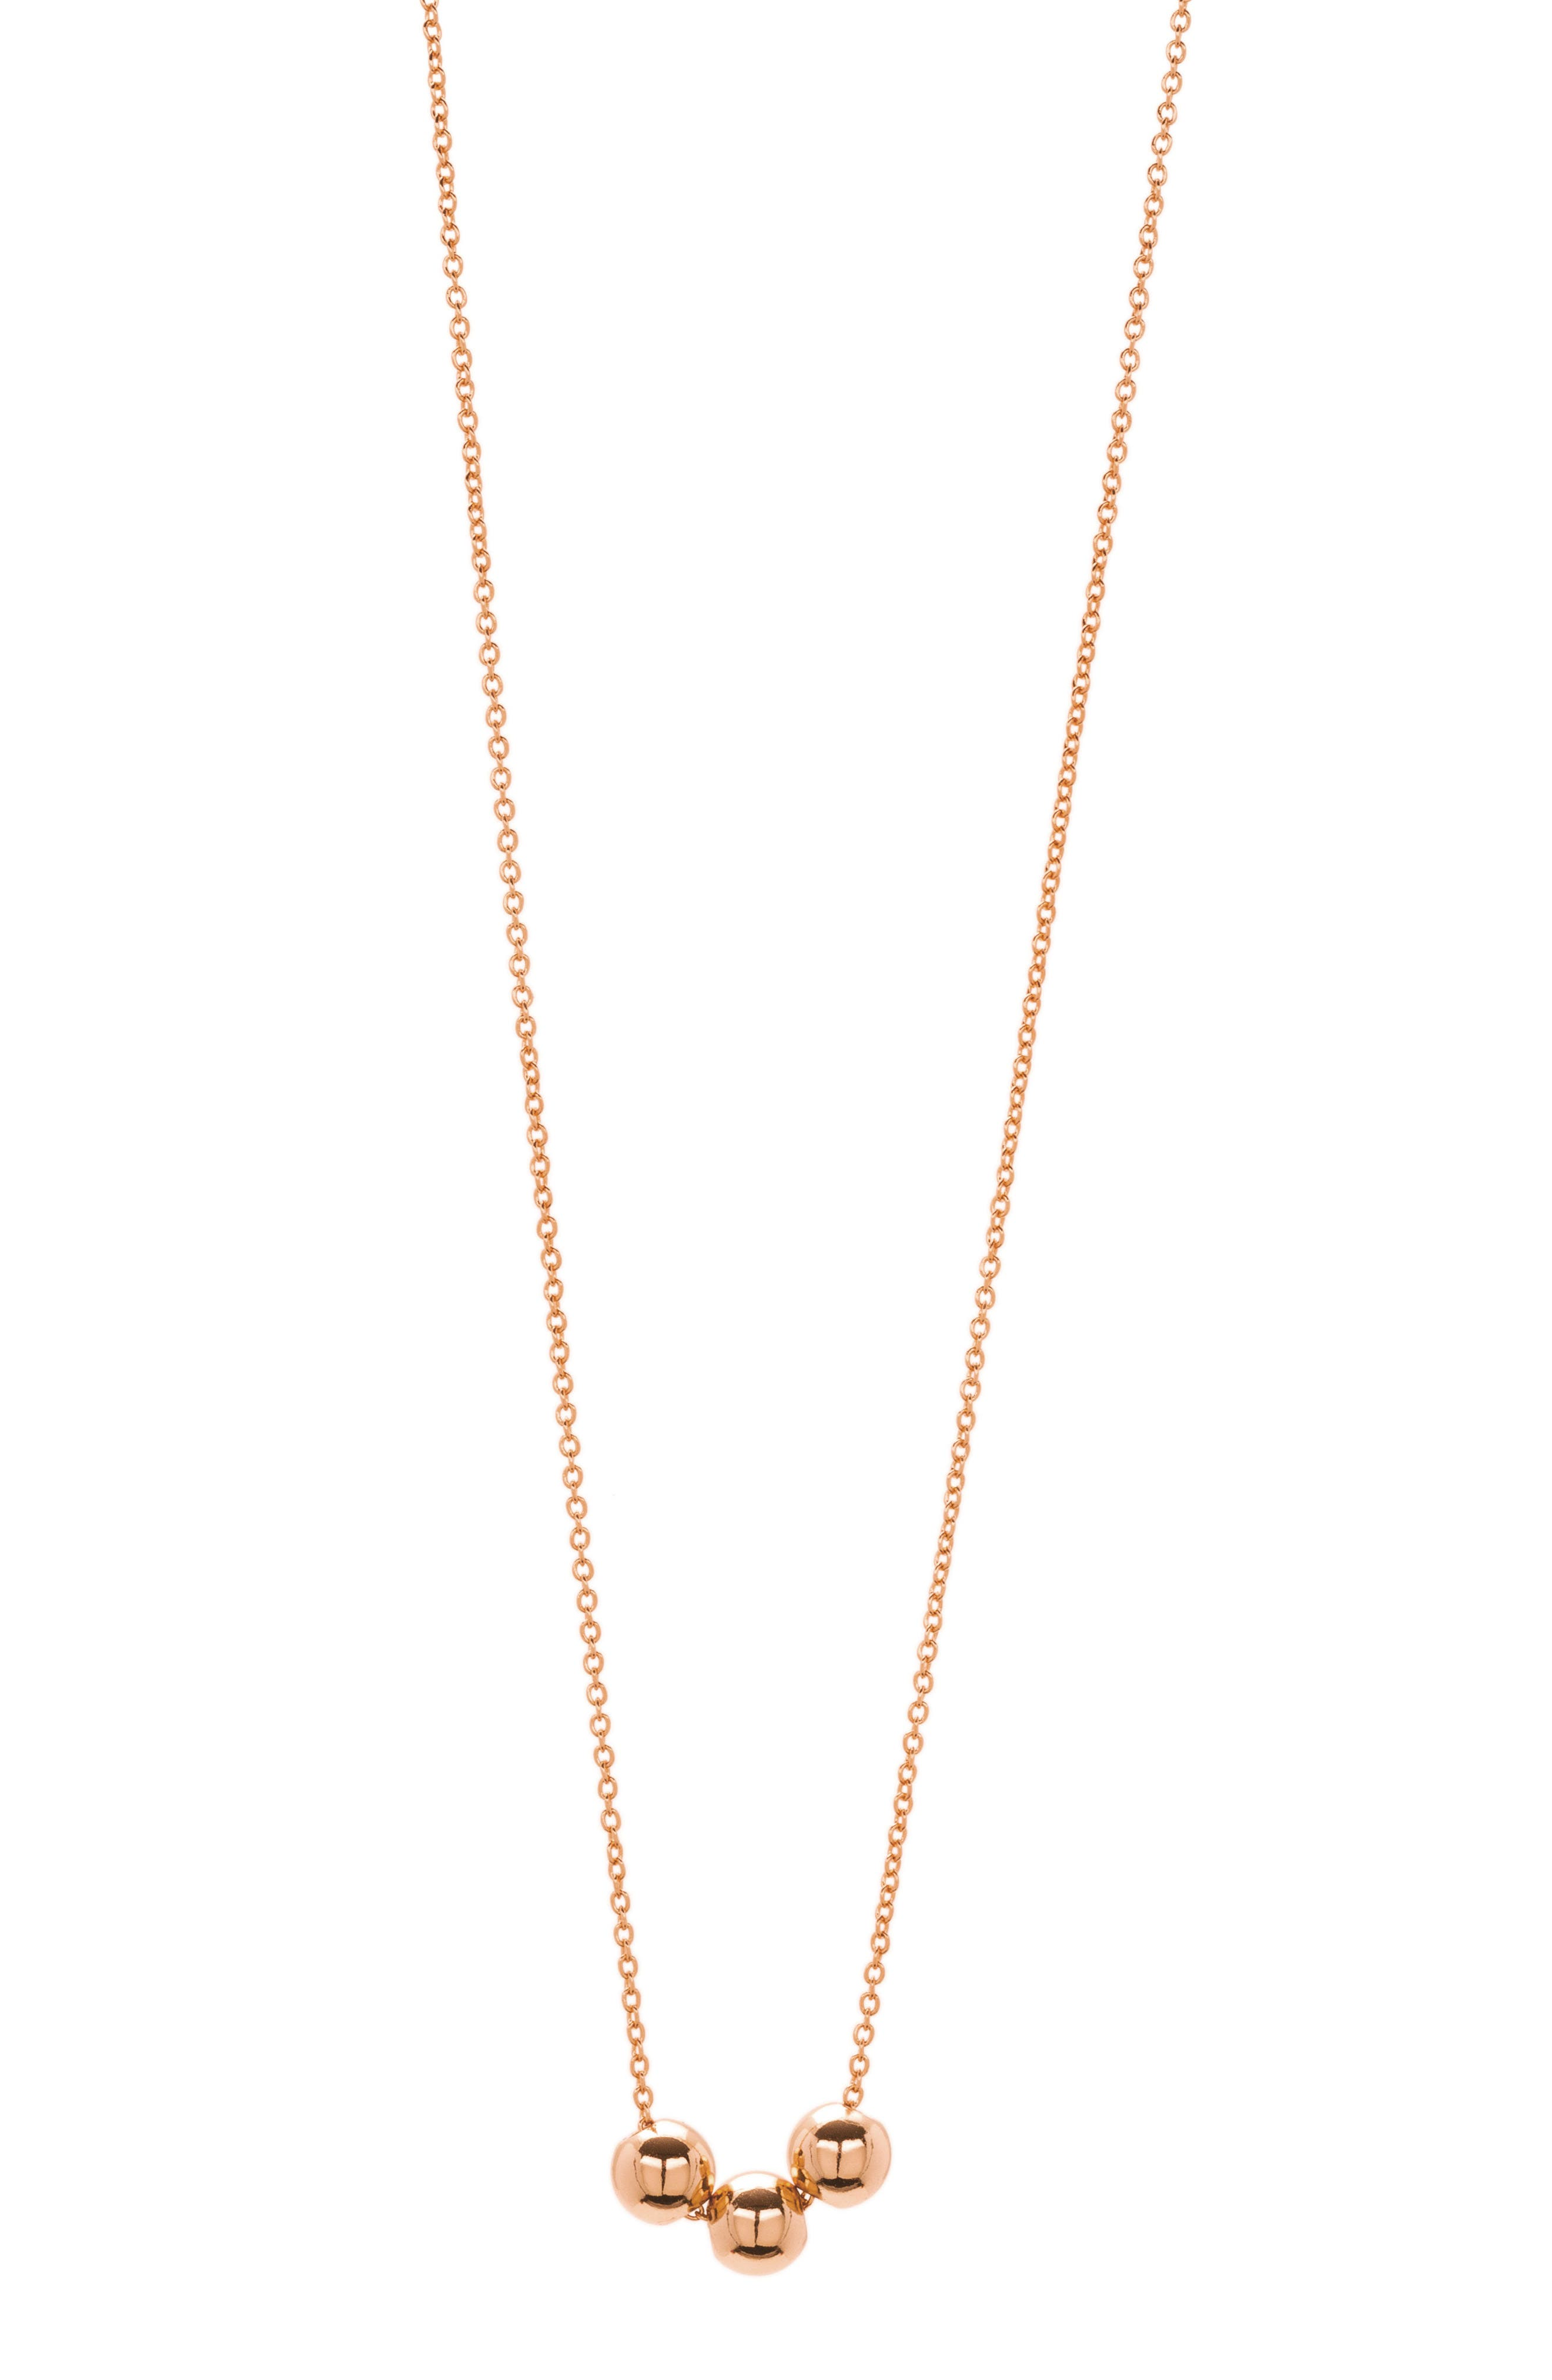 Newport Beaded Necklace,                             Alternate thumbnail 3, color,                             Rose Gold